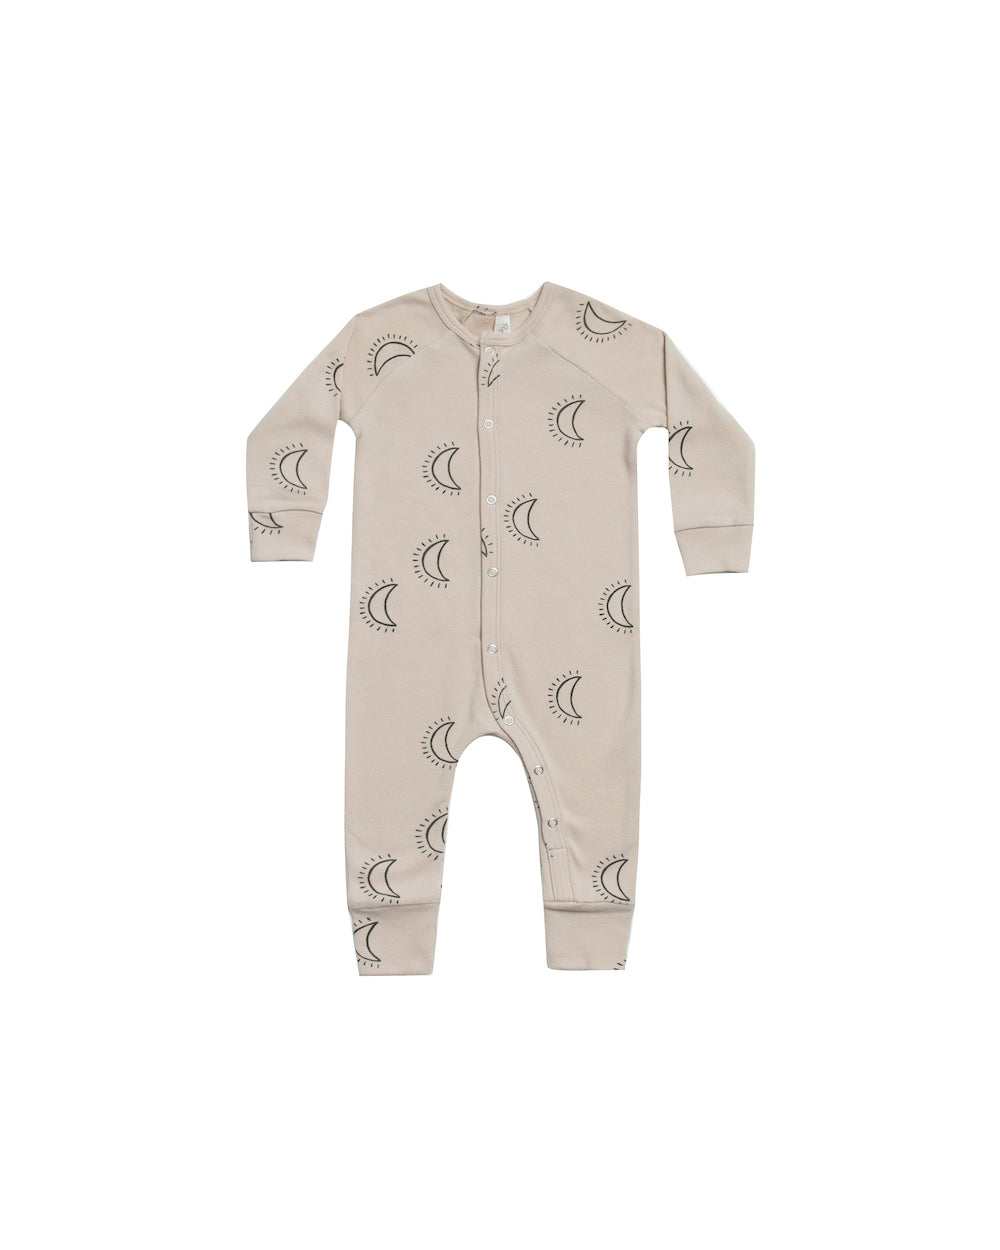 Rylee + Cru Moons Longjohn - Warm Grey